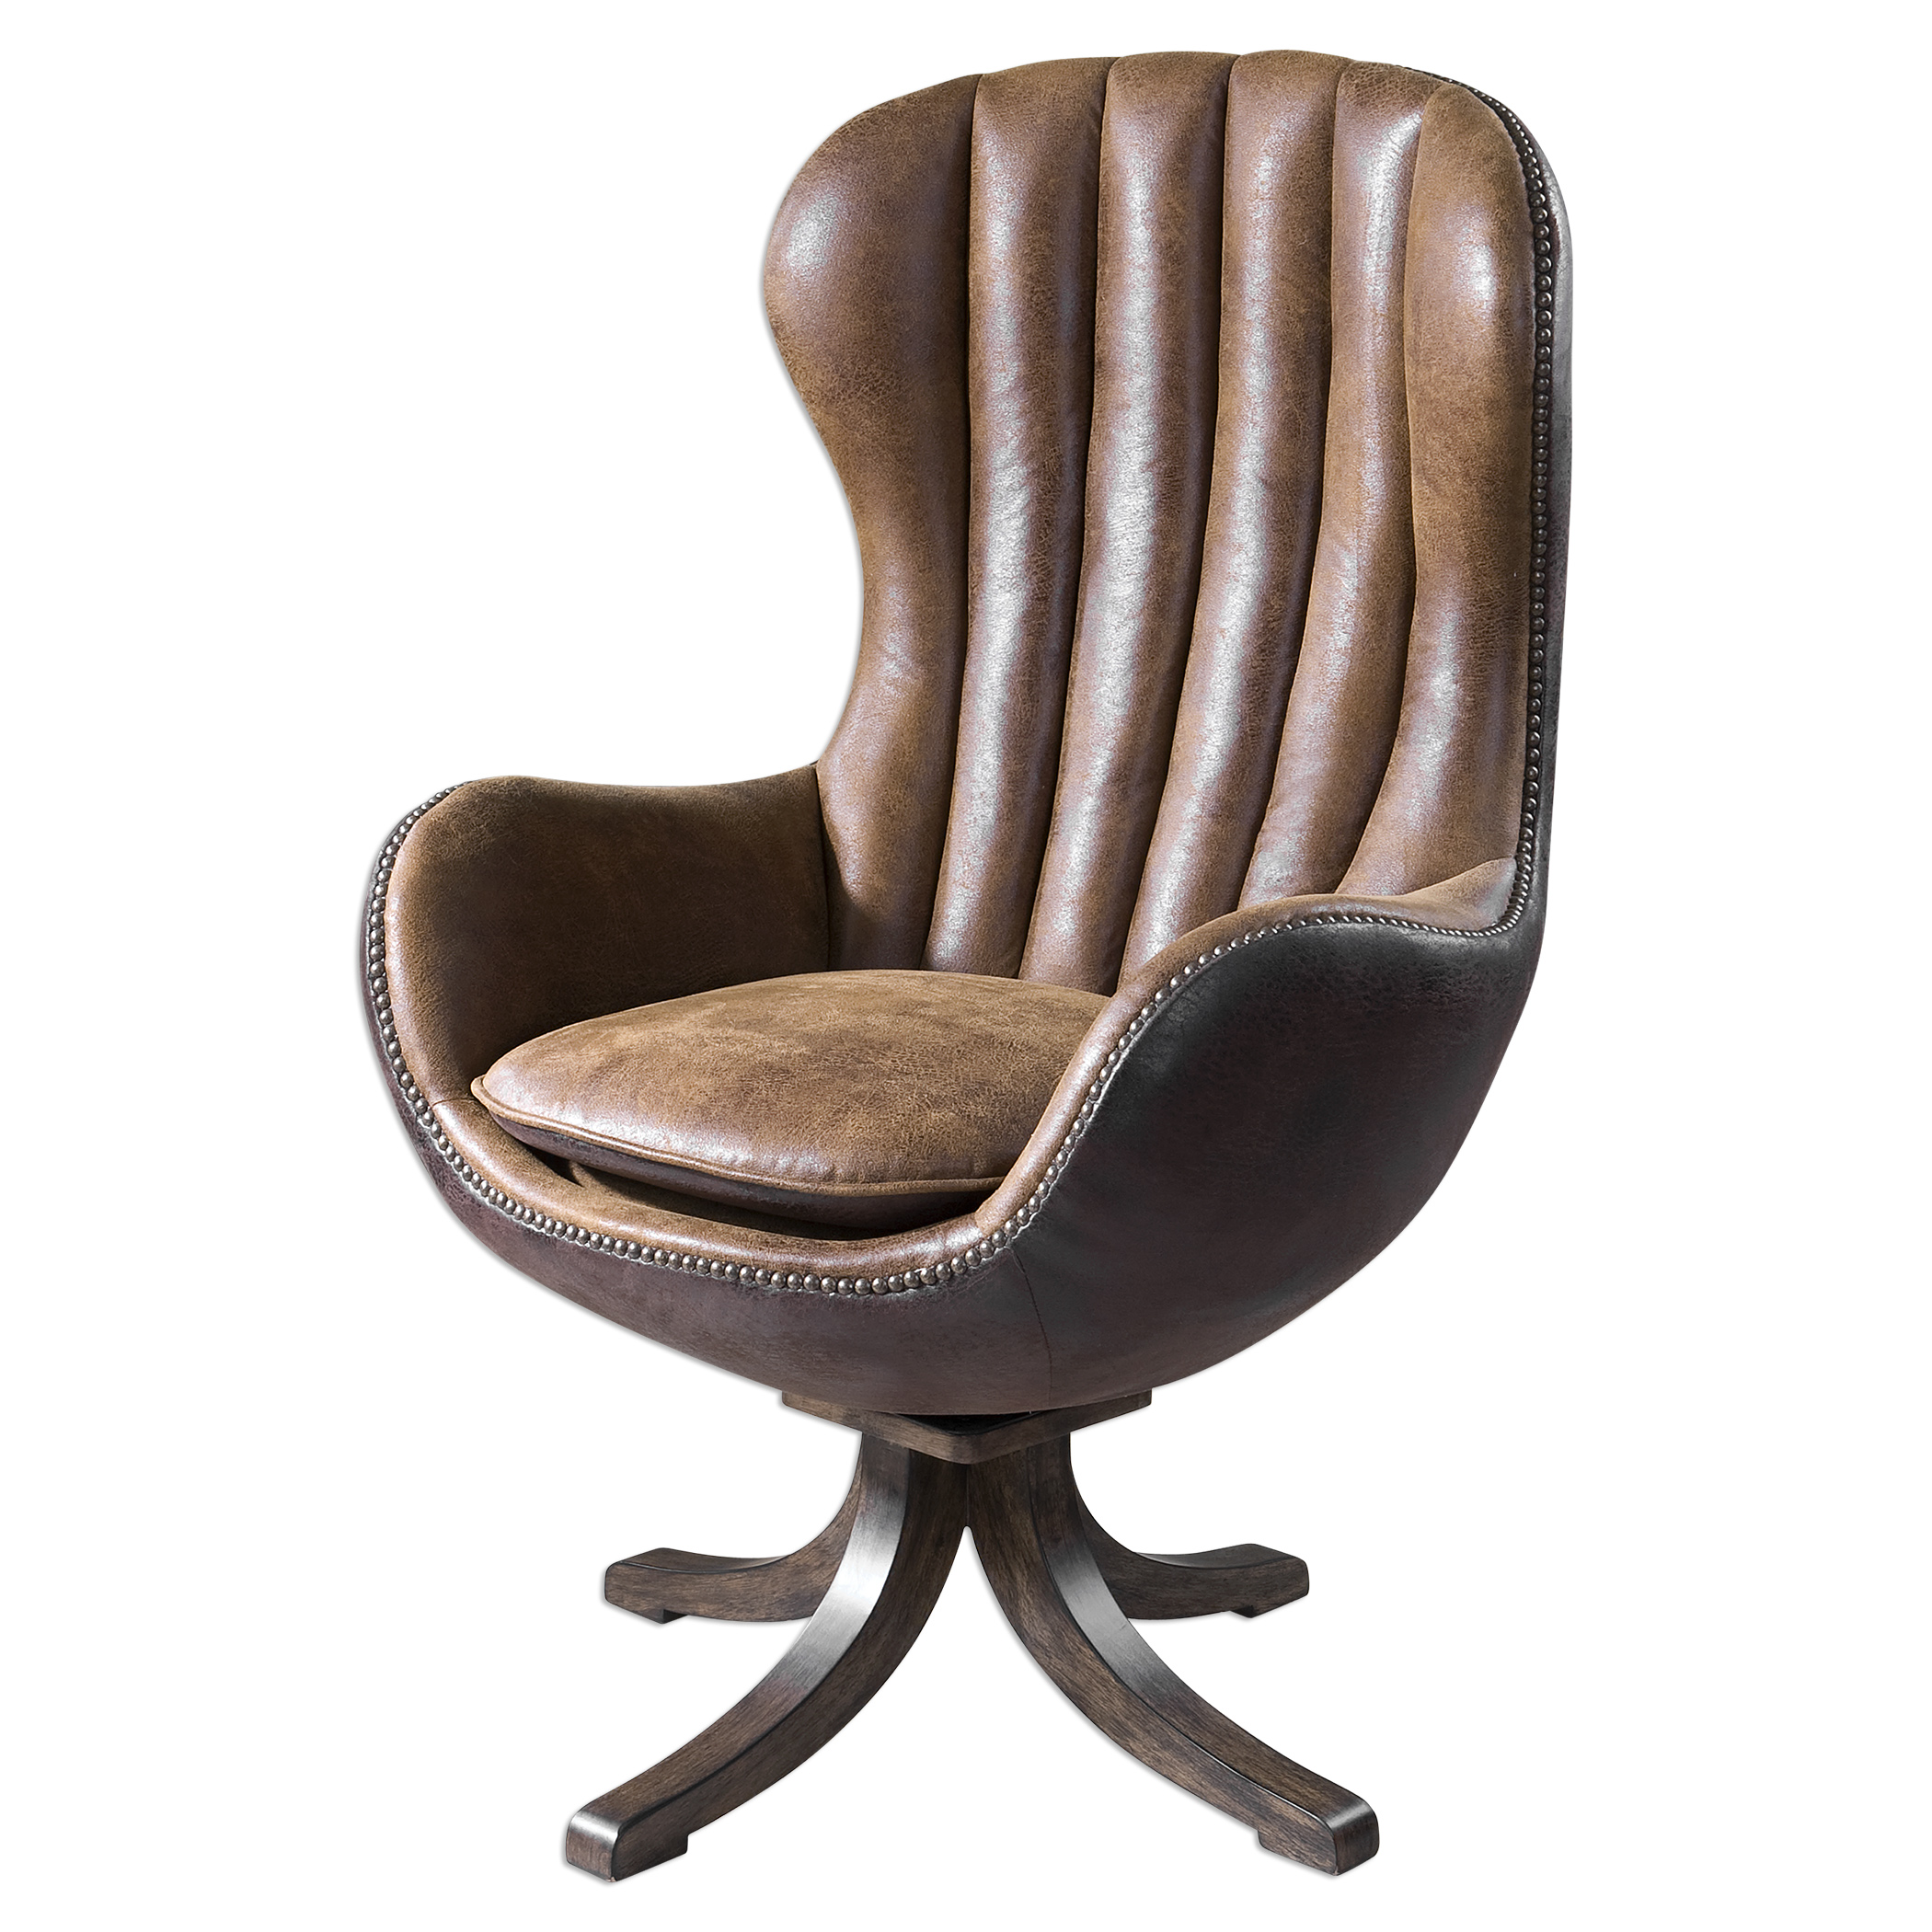 Uttermost Accent Furniture Garrett Mid-century Swivel Chair - Item Number: 23268